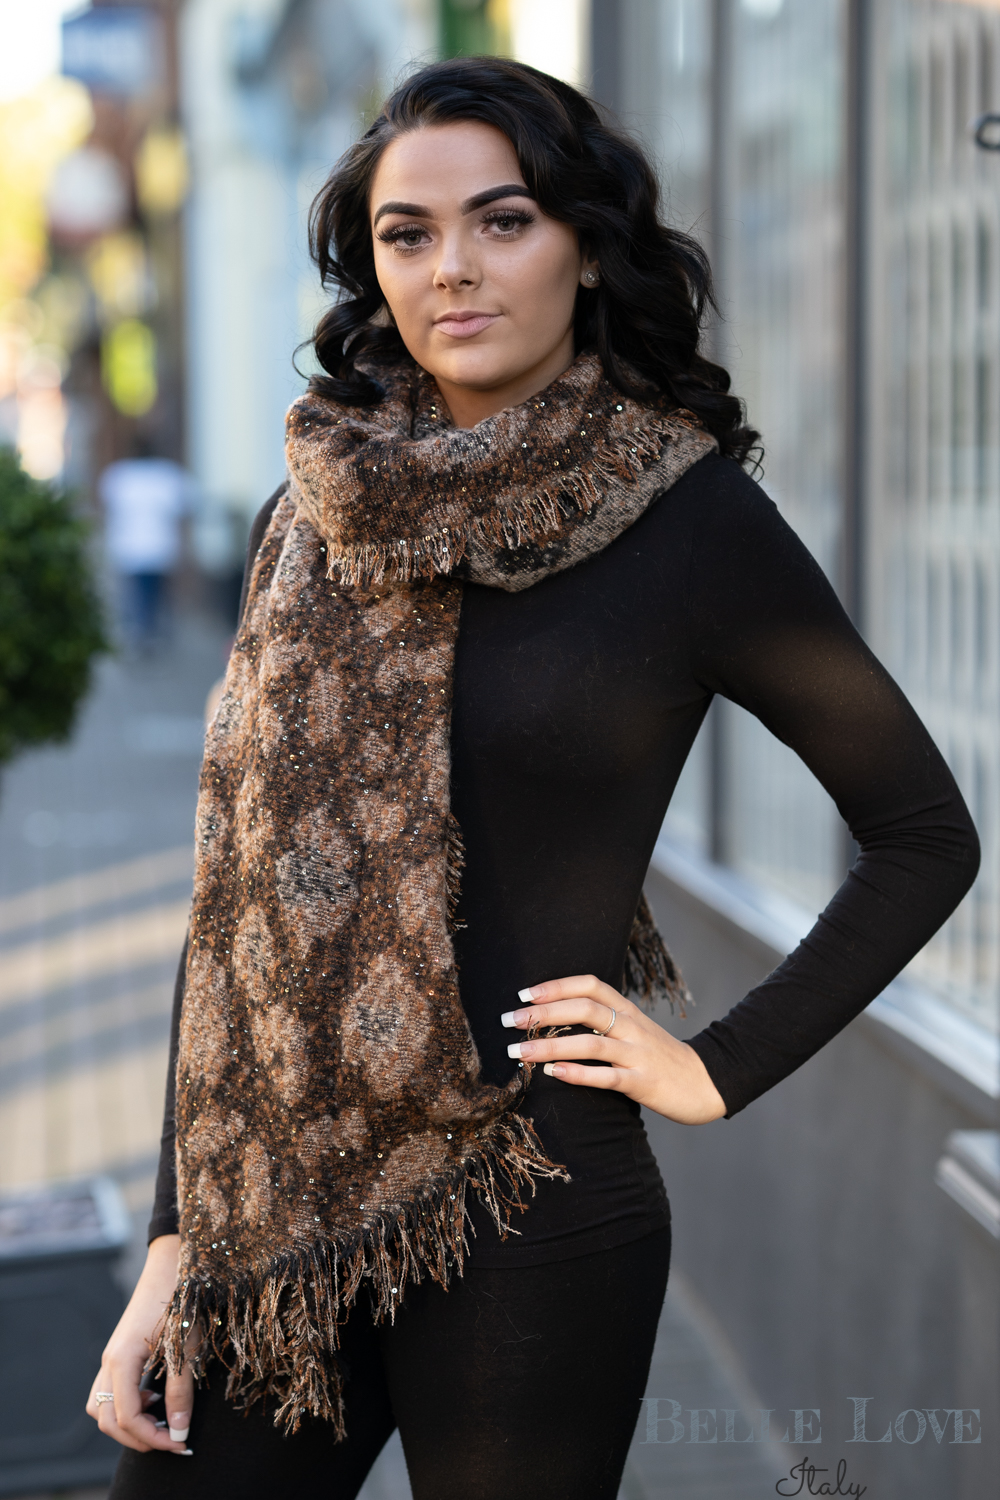 Belle Love Italy Sparkle Leopard Print Scarf